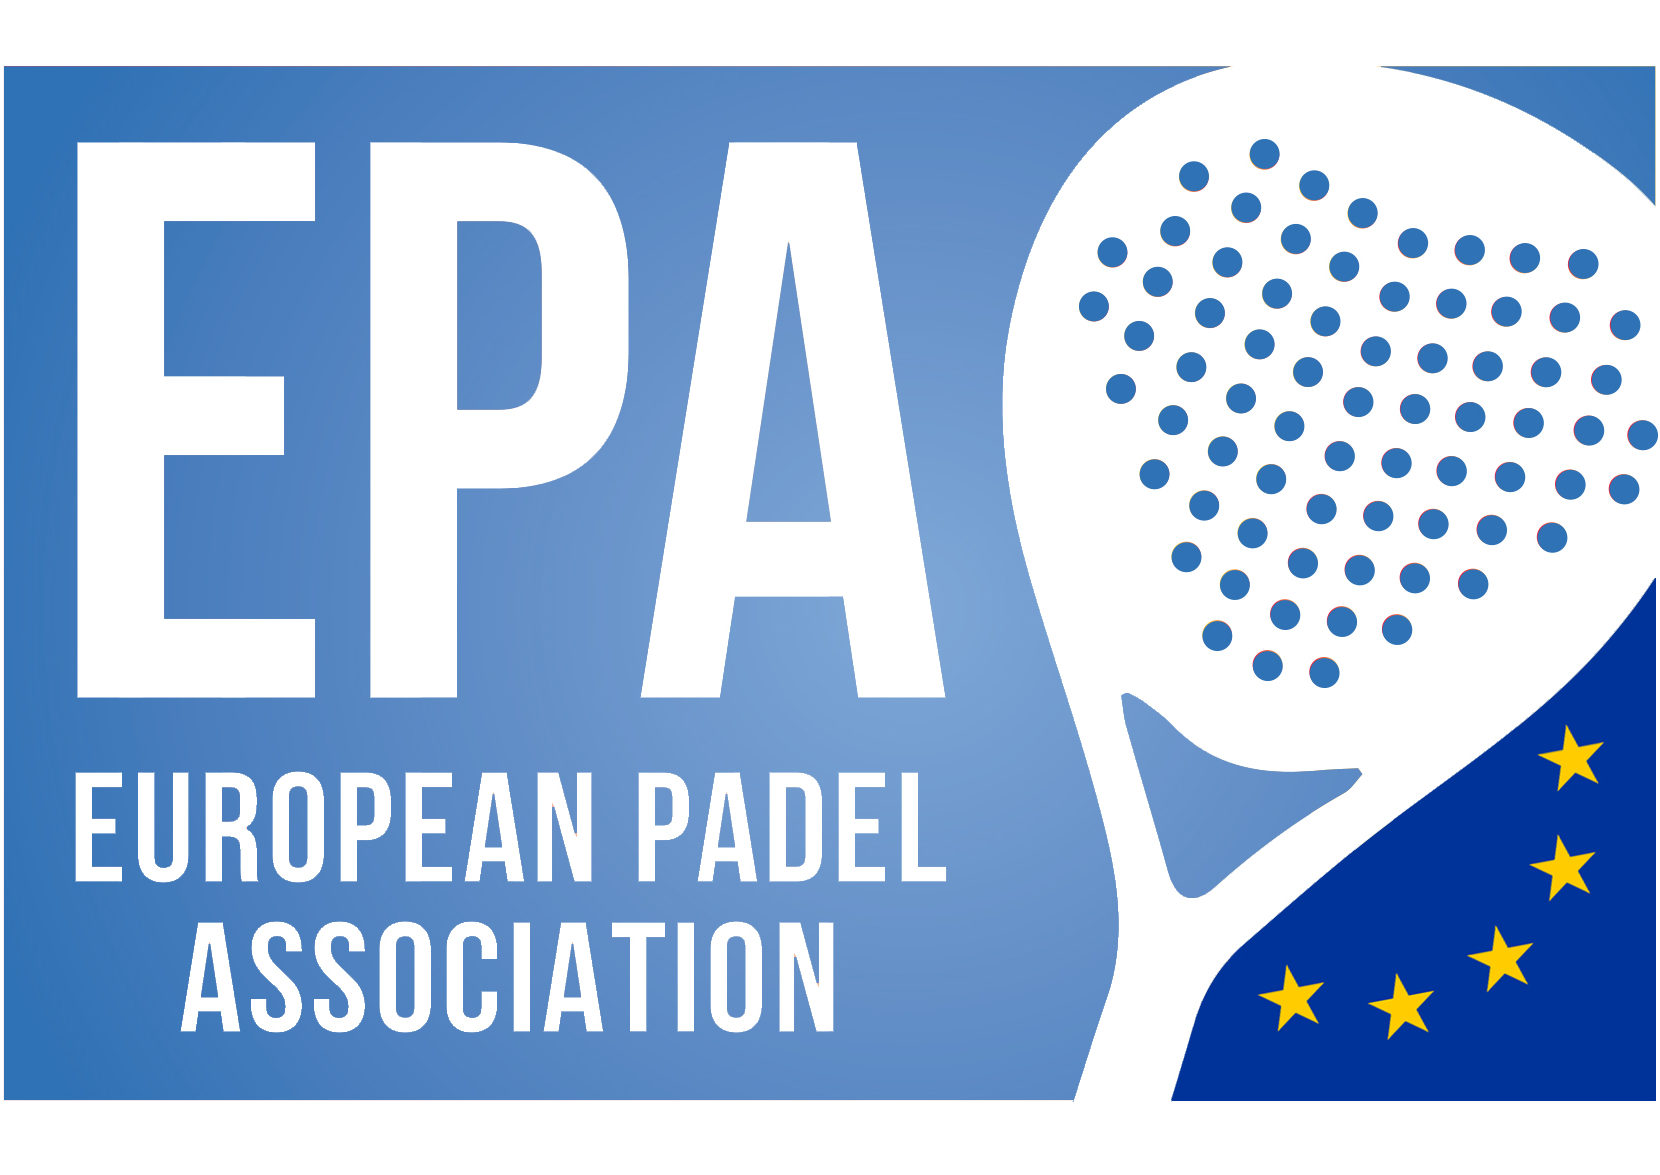 EUROPEAN PADEL ASSOCIATION